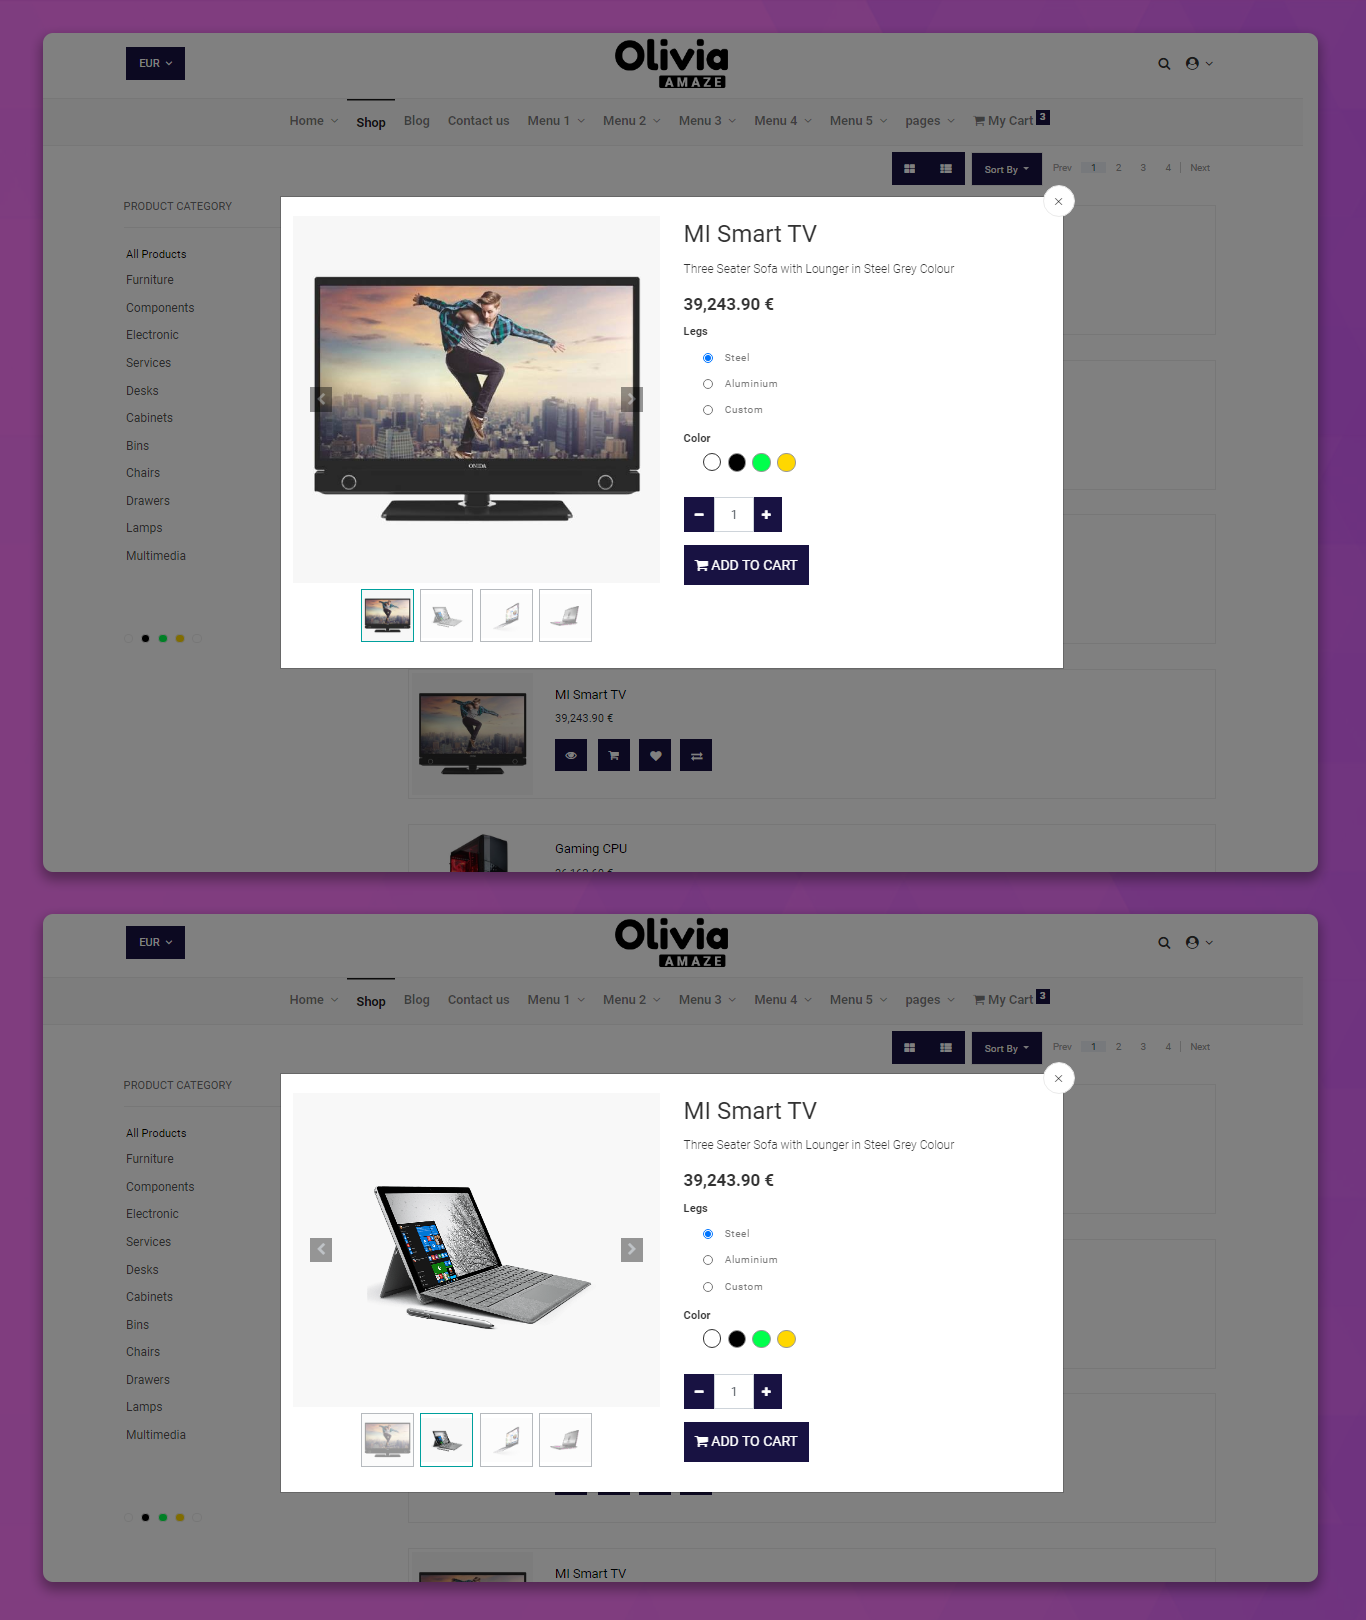 Wine odoo theme, Odoo theme for Sports, Shoes odoo theme, Restaurant theme for odoo v14 CE, odoo 13 community